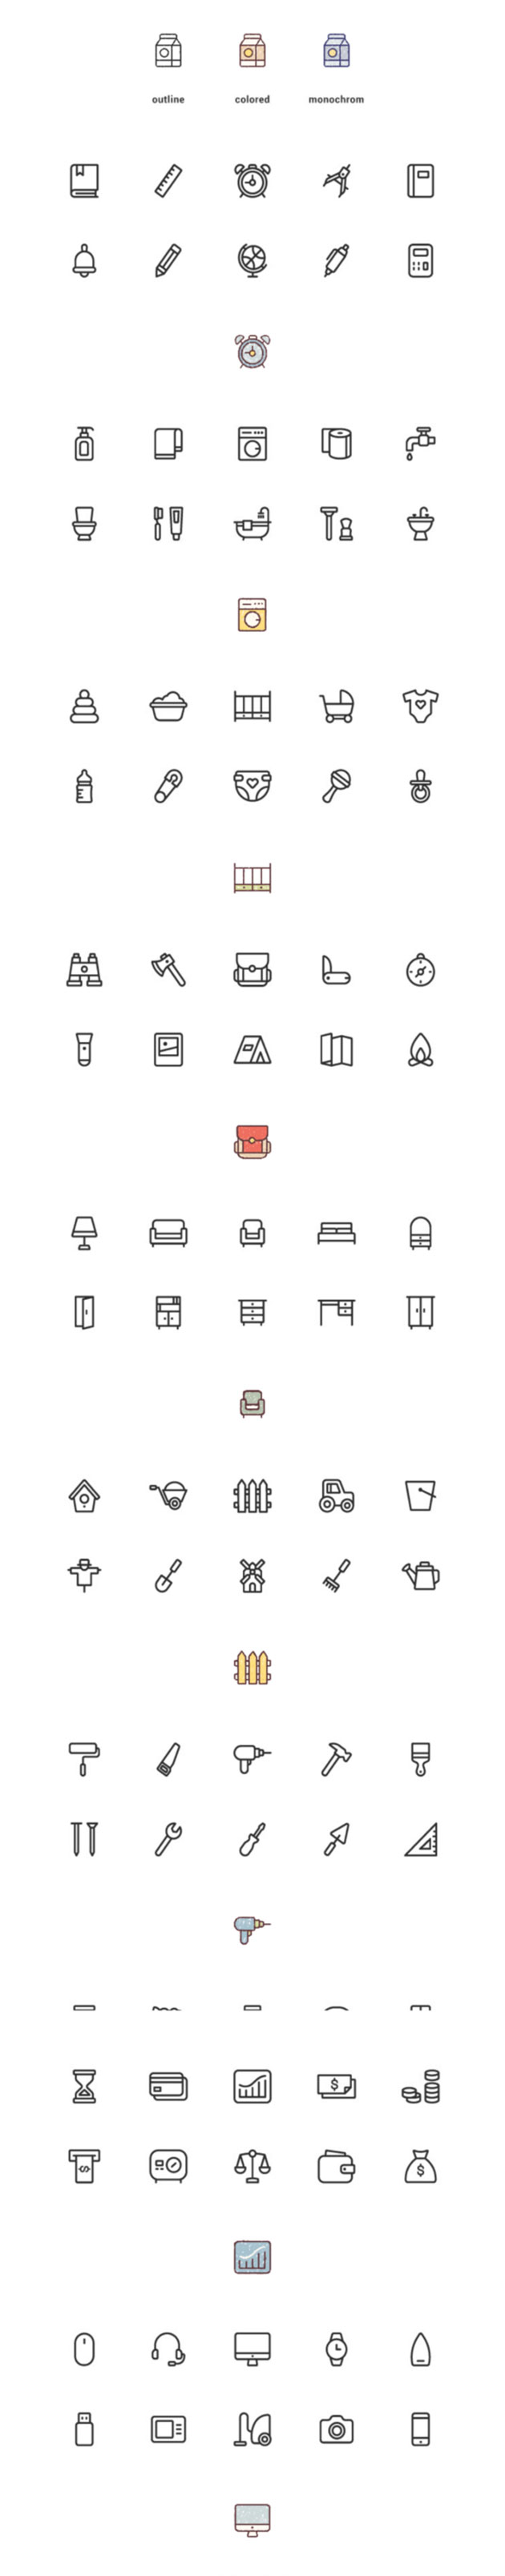 150-vector-icons-preview-580x2961